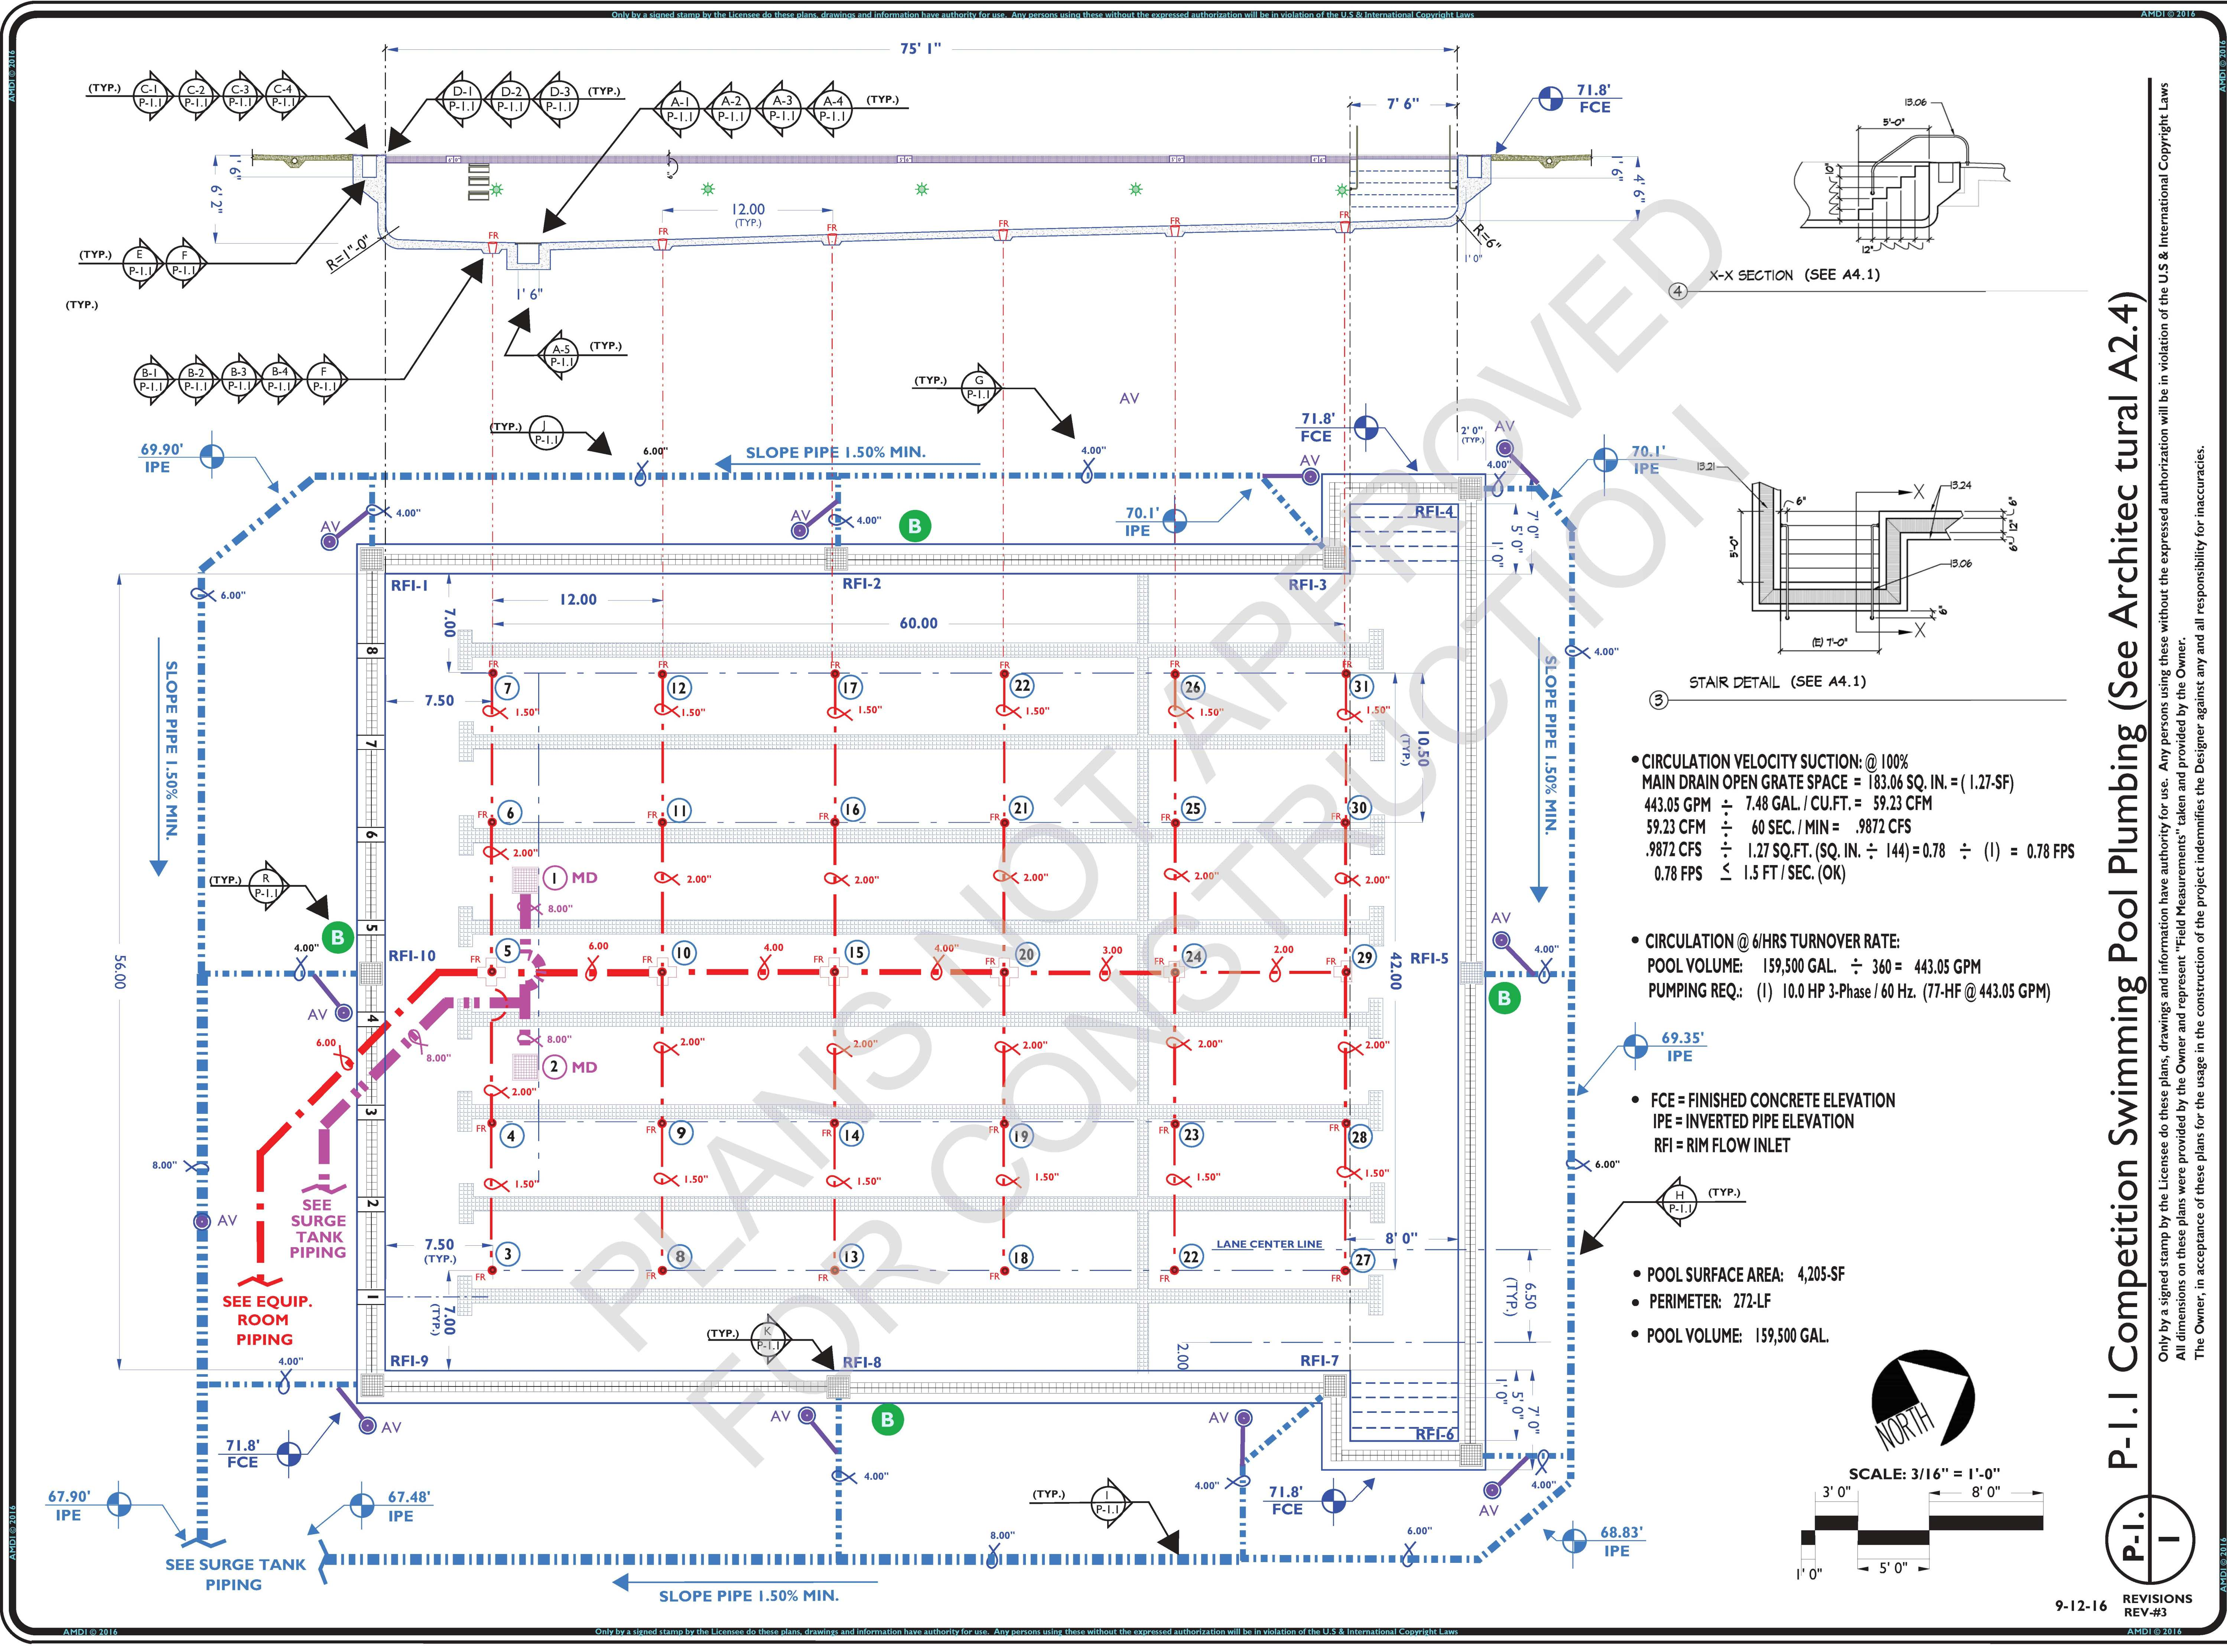 Piping Layout Plan Wiring Library Autocad Preliminary P 11 Competition Pool